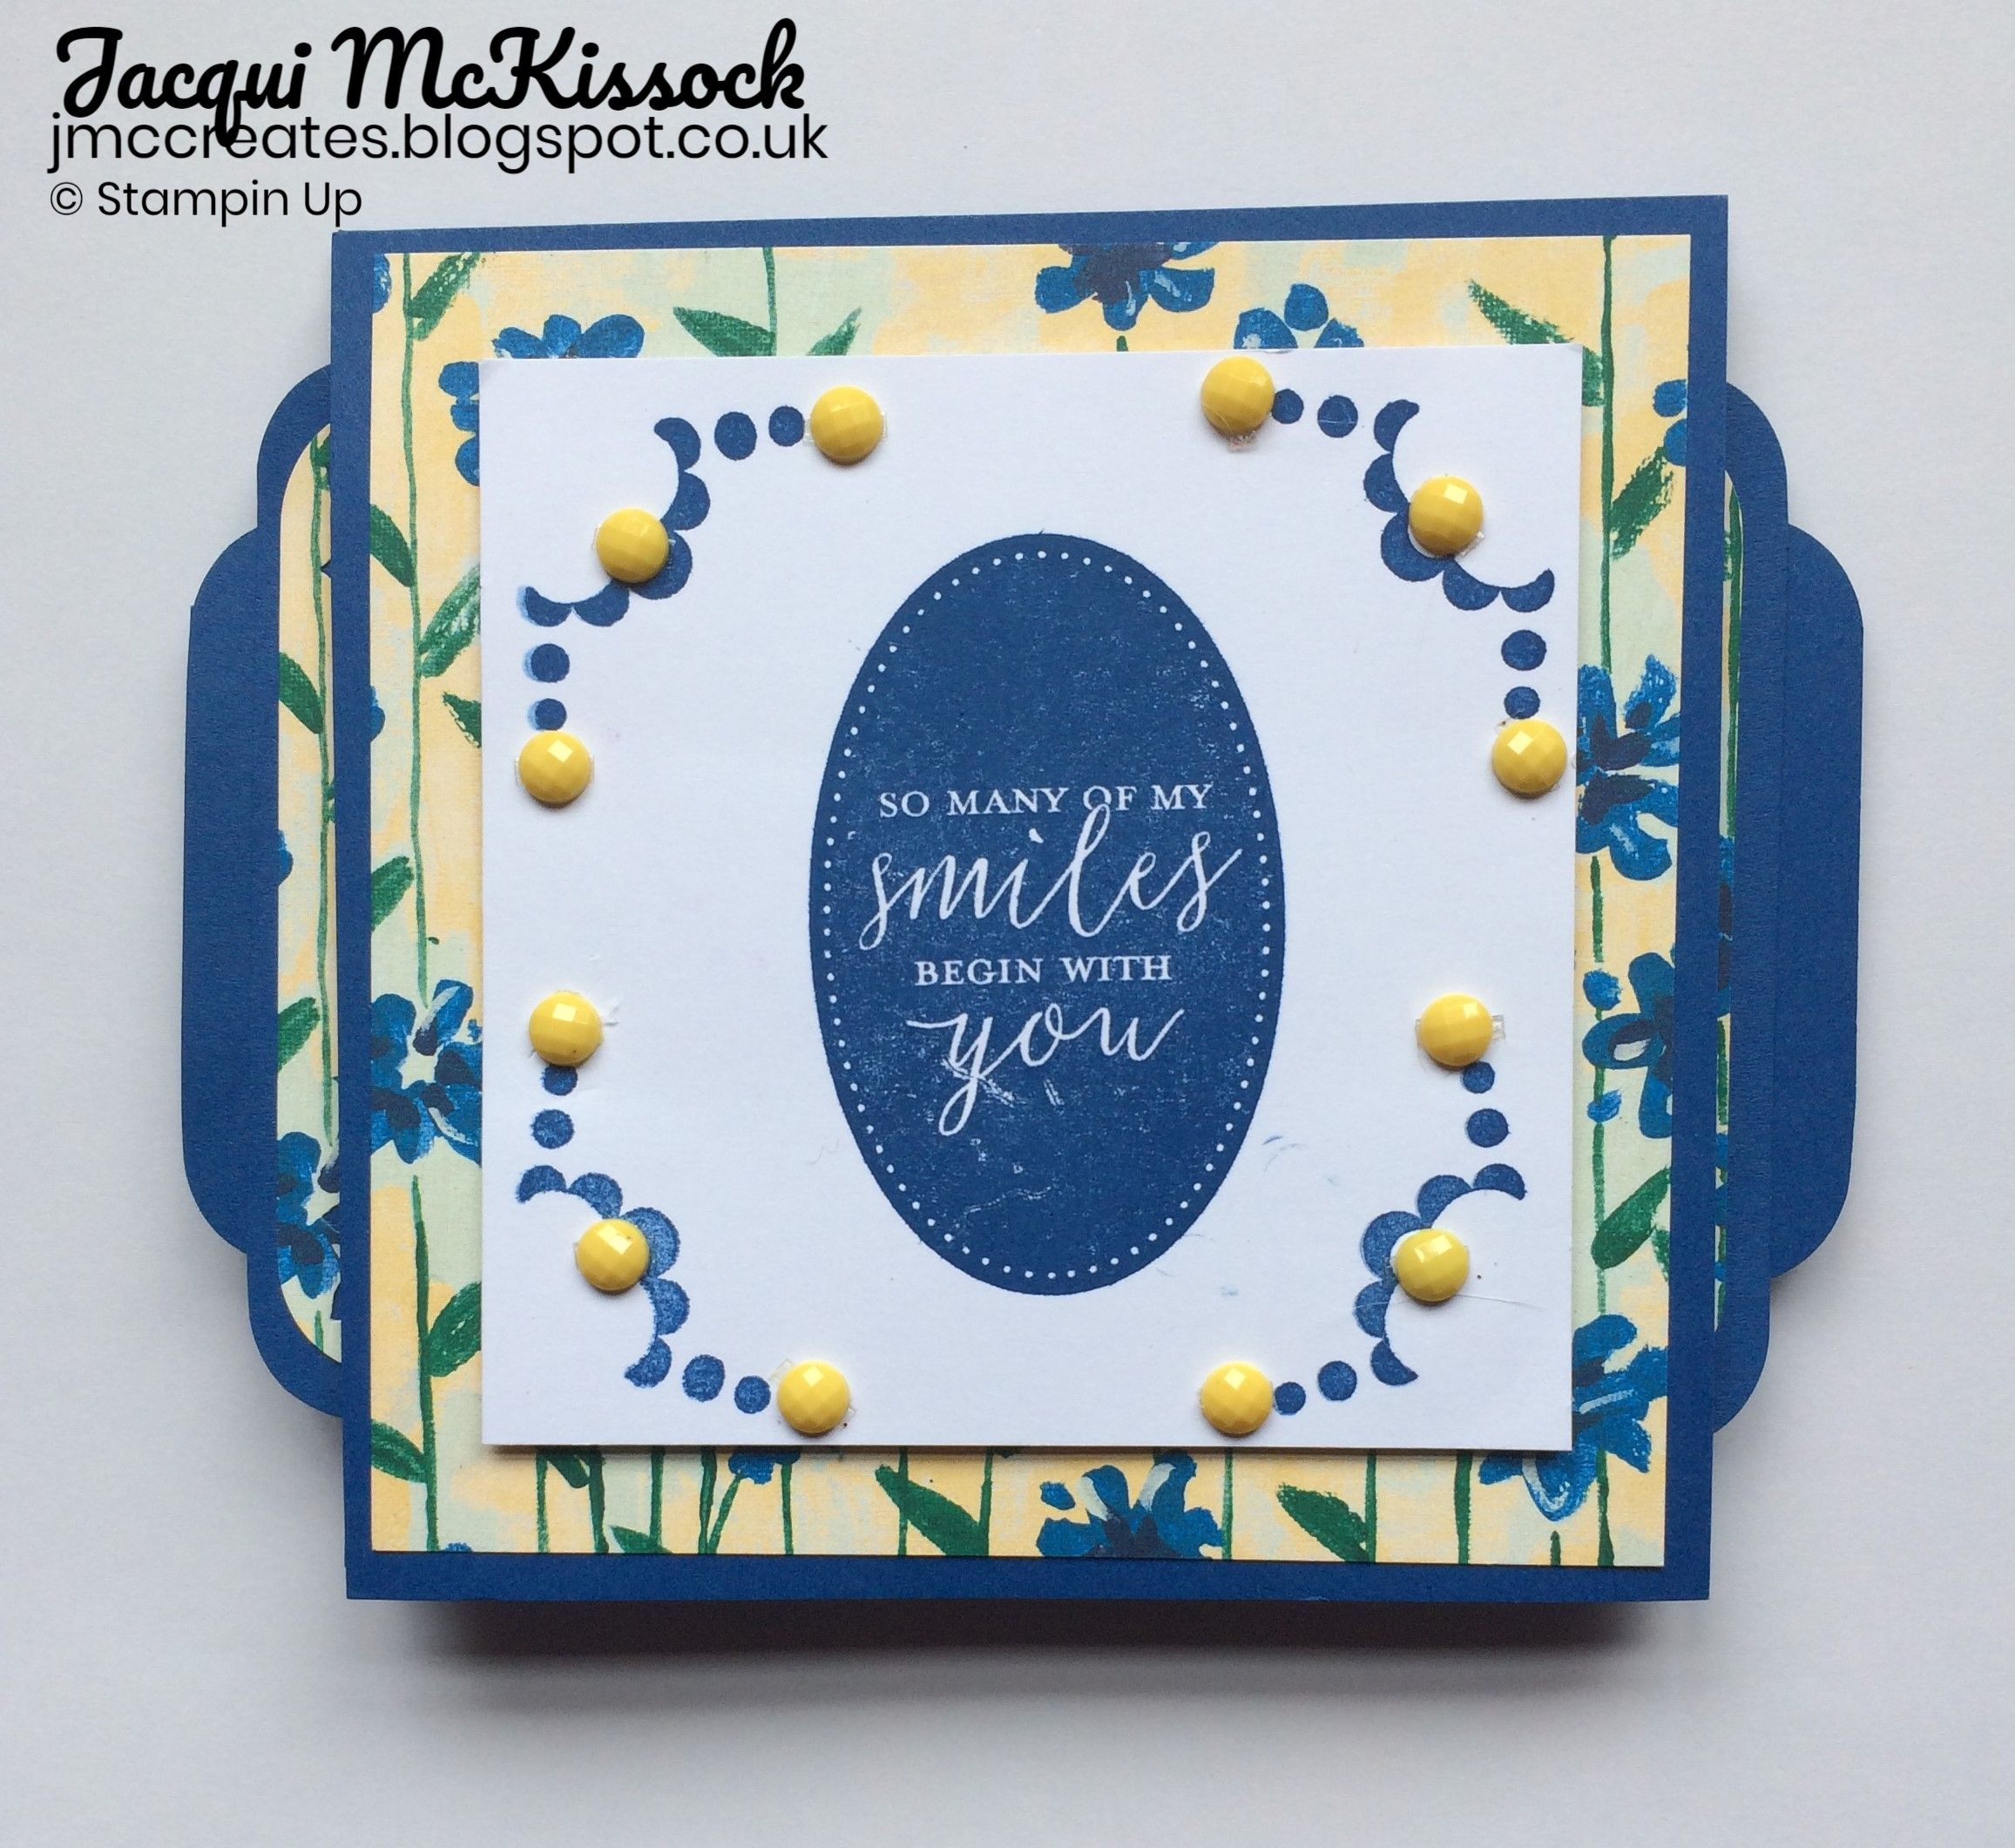 stampin up items used garden impressions dsp blueberry